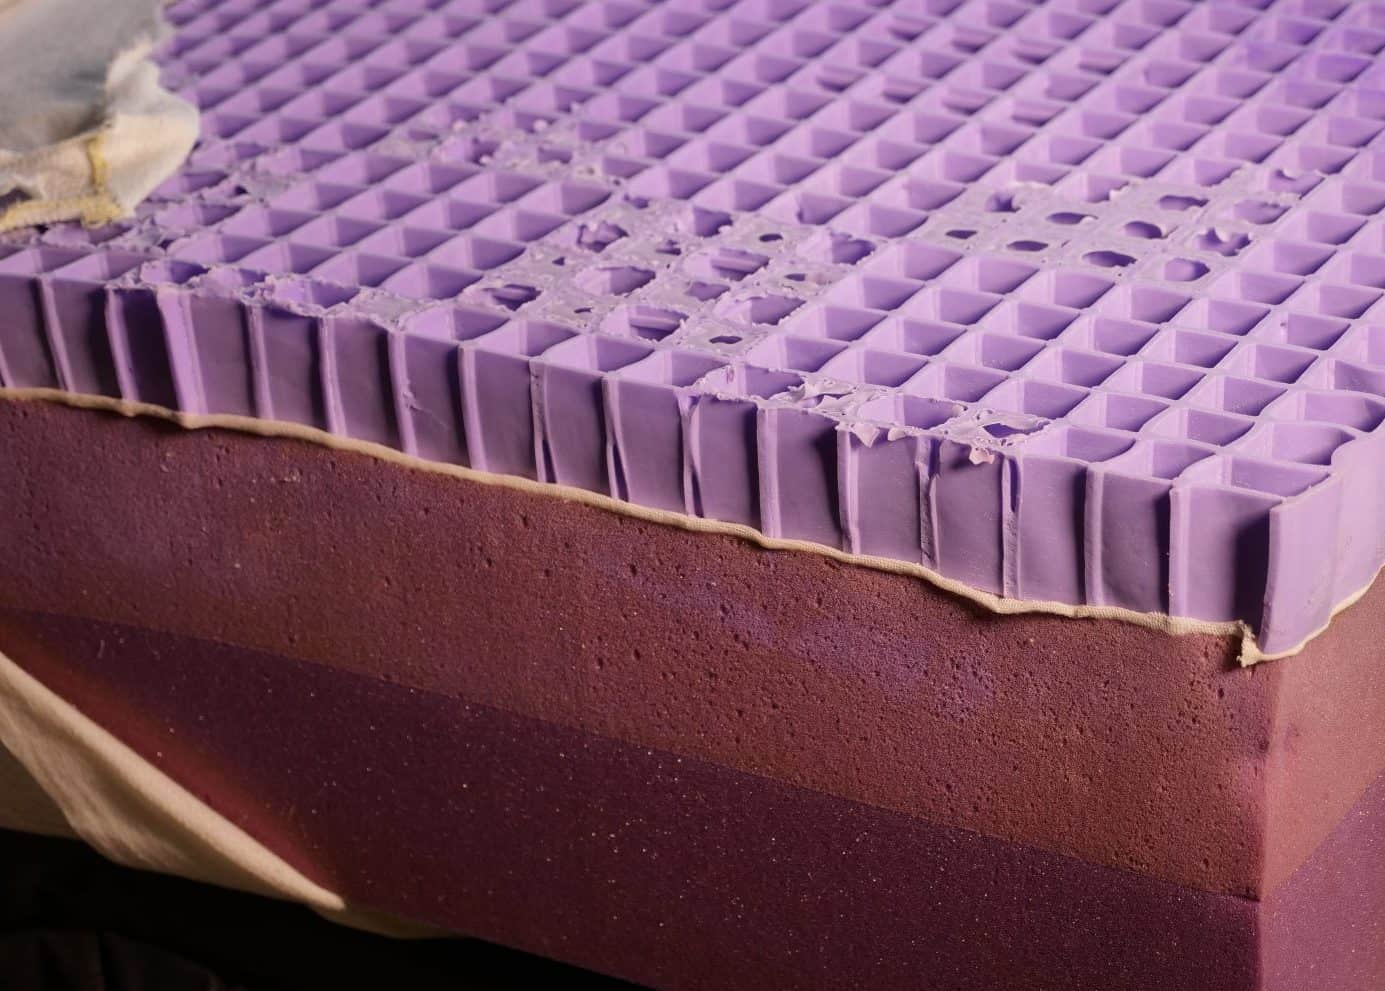 Purple Mattress Review  1 Year Update   Non Biased Reviews Purple Mattress Review  2018 I have had it for a year